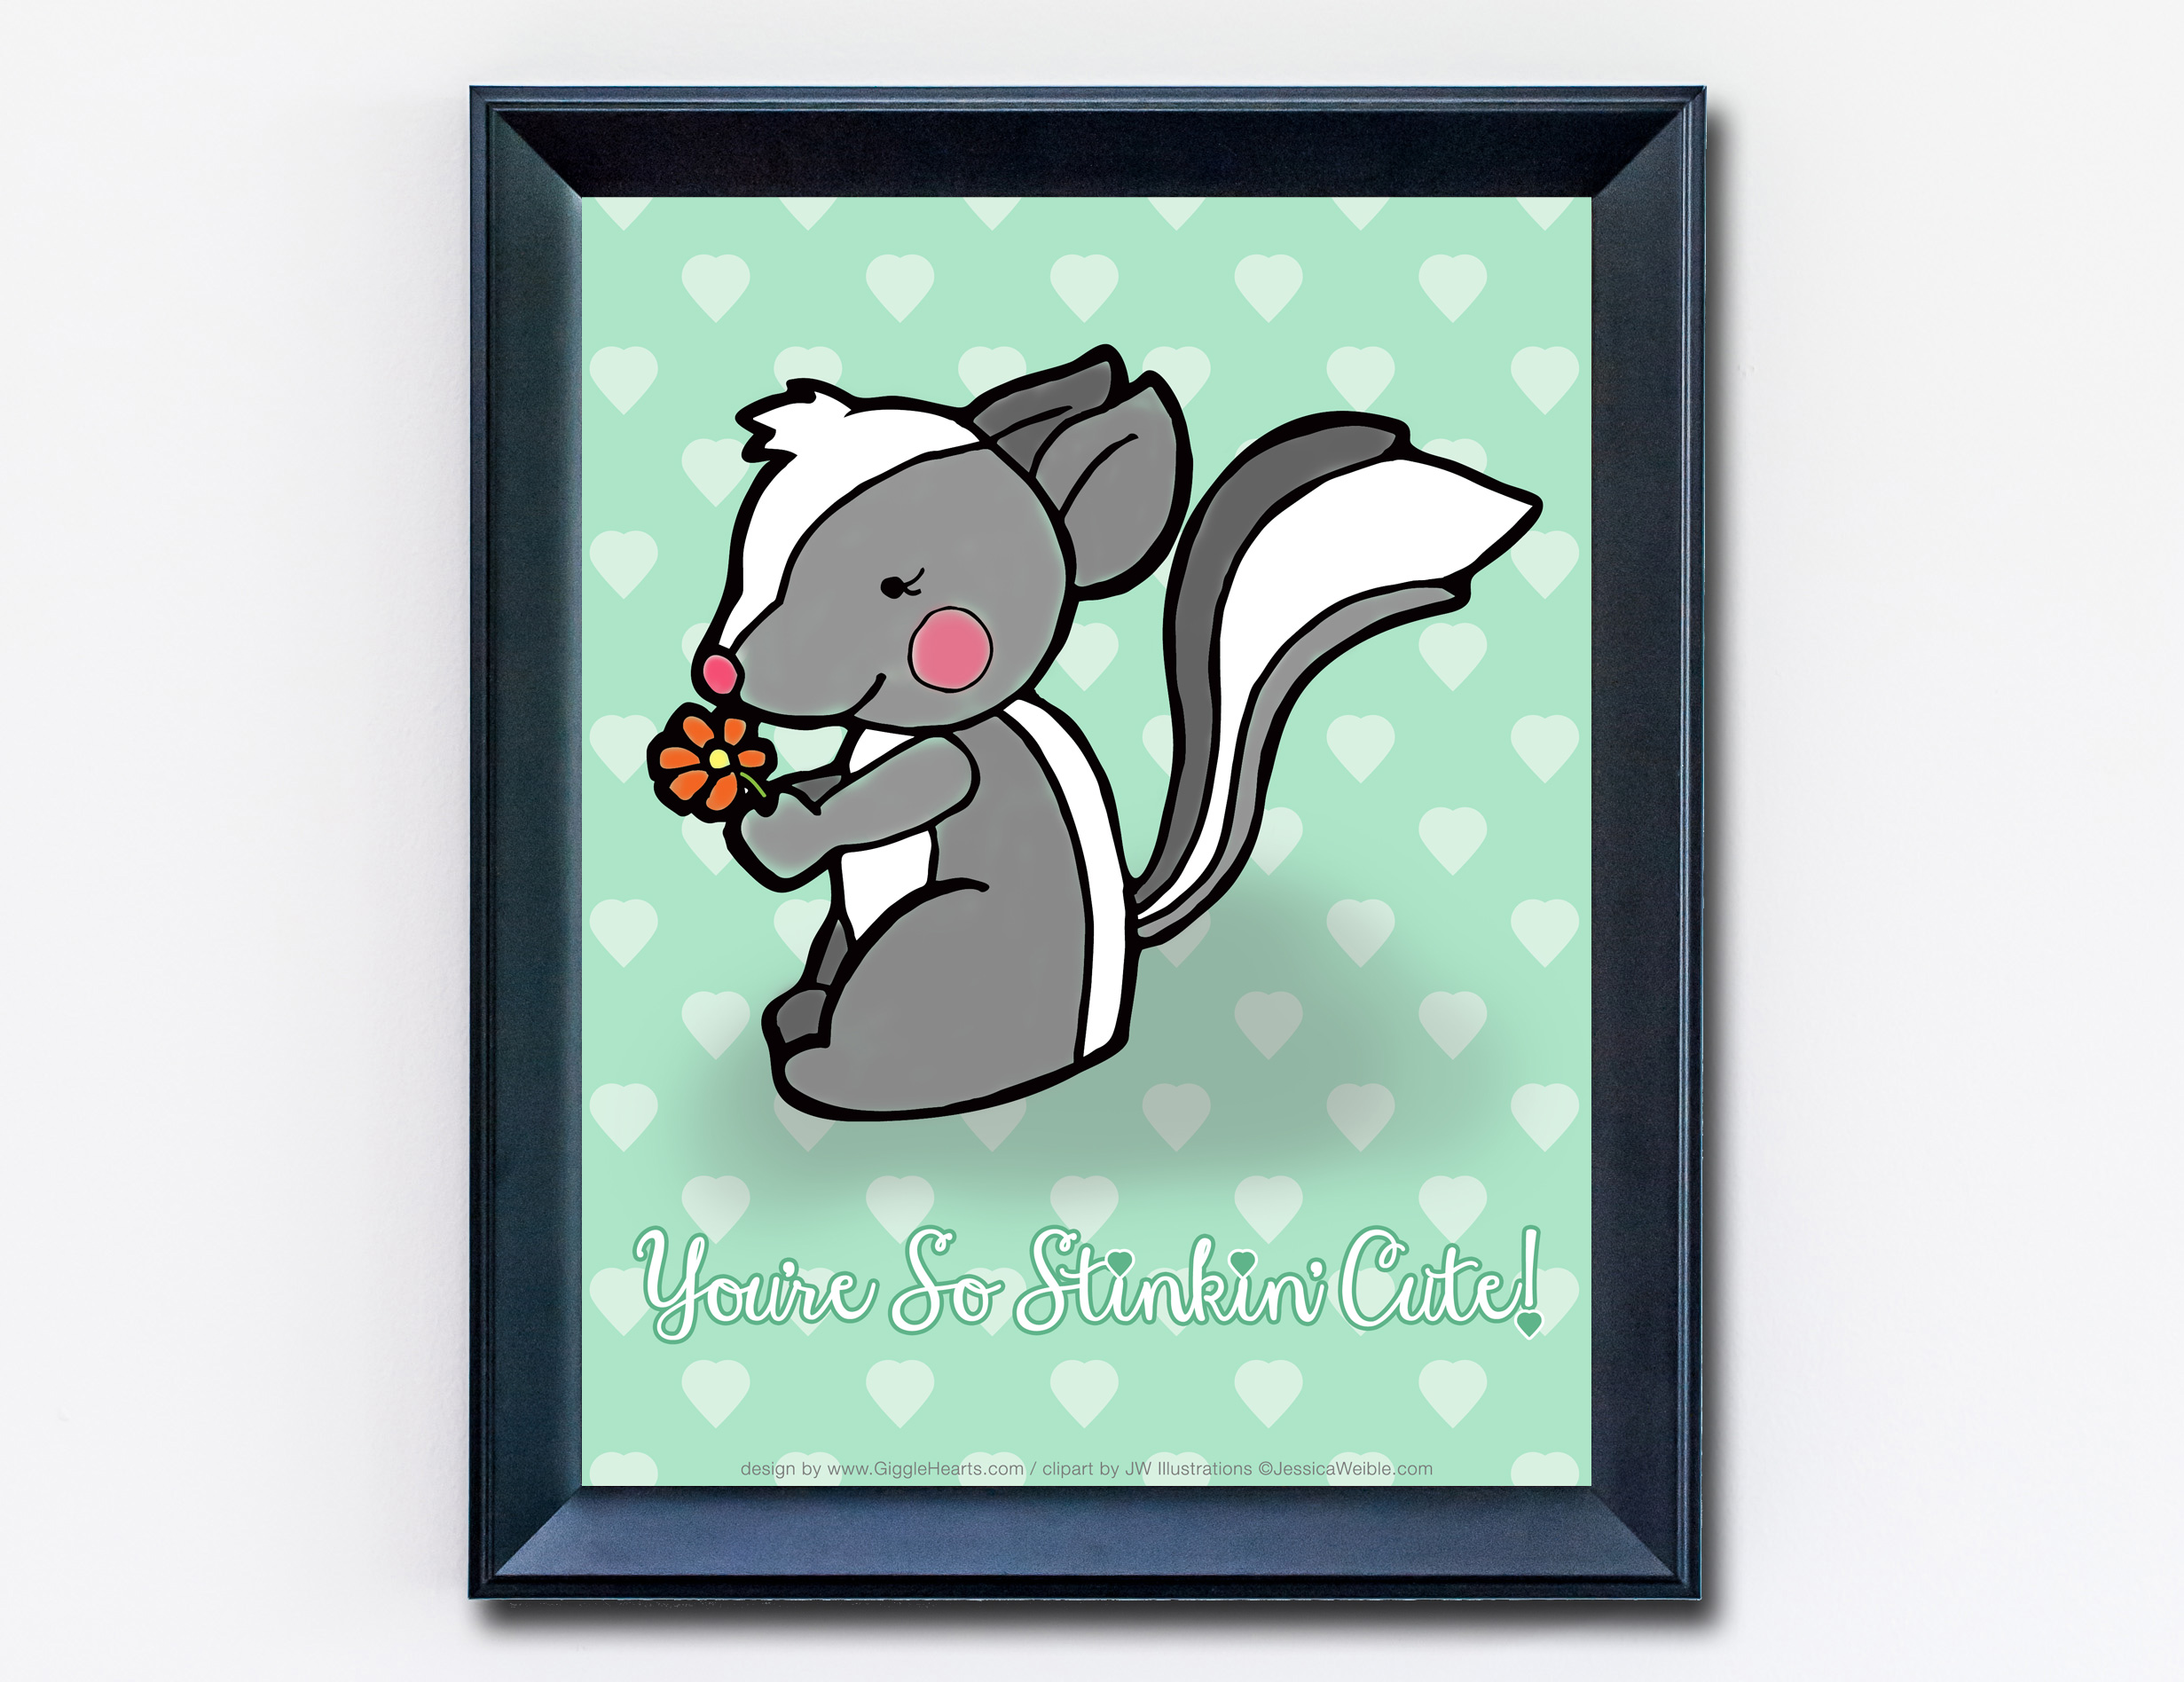 """Download and Print this Adorable Skunk Print that reads """"You're So Stinkin' Cute"""" / from www.GiggleHearts.com"""